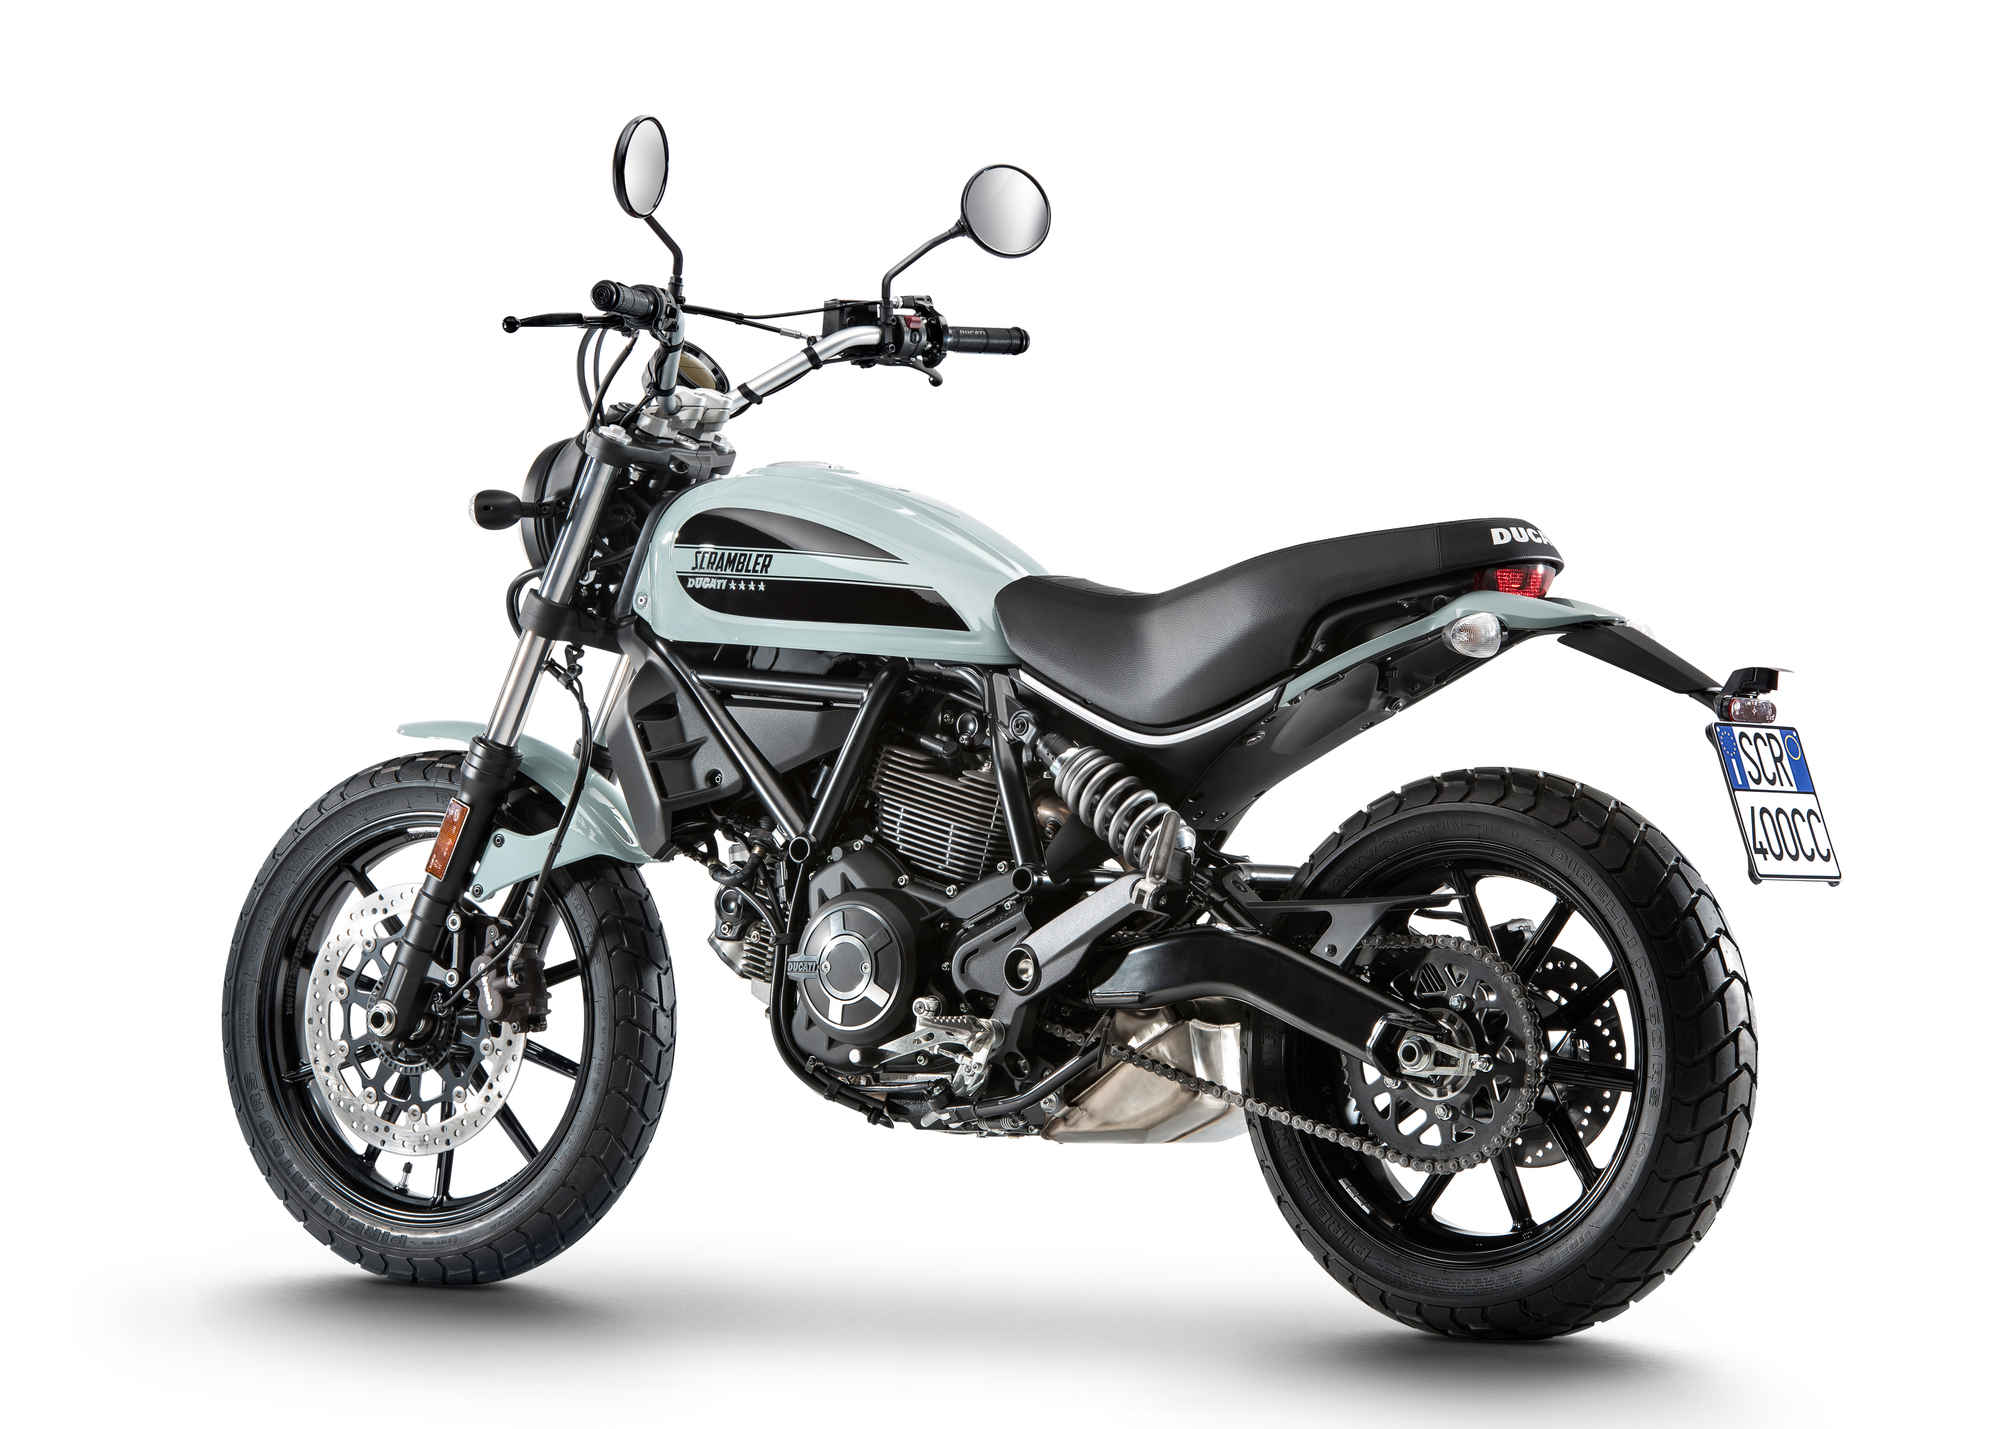 Review of Ducati 2016 Scrambler